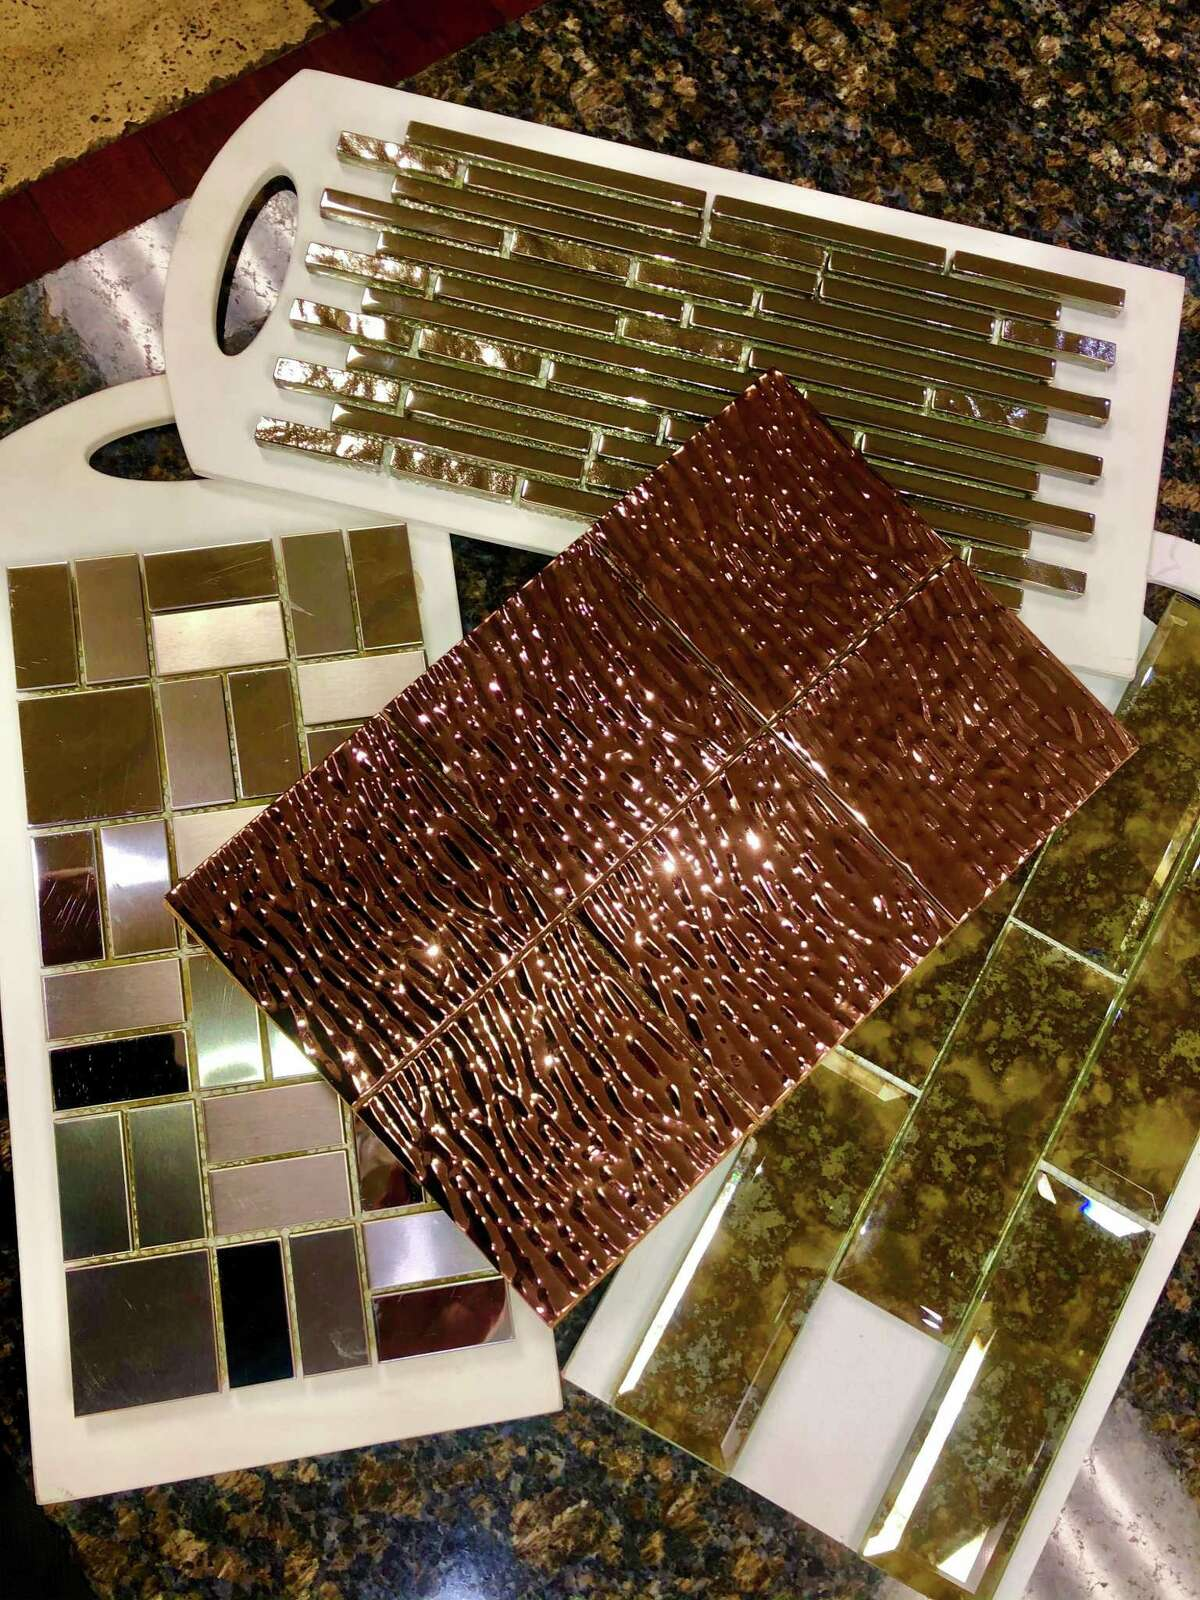 Tiles plated with various metals, such as copper, center, make for decorative flourishes on shower floors, in wall niches, for kitchen backsplashes or as simple bands along a bathroom wall.